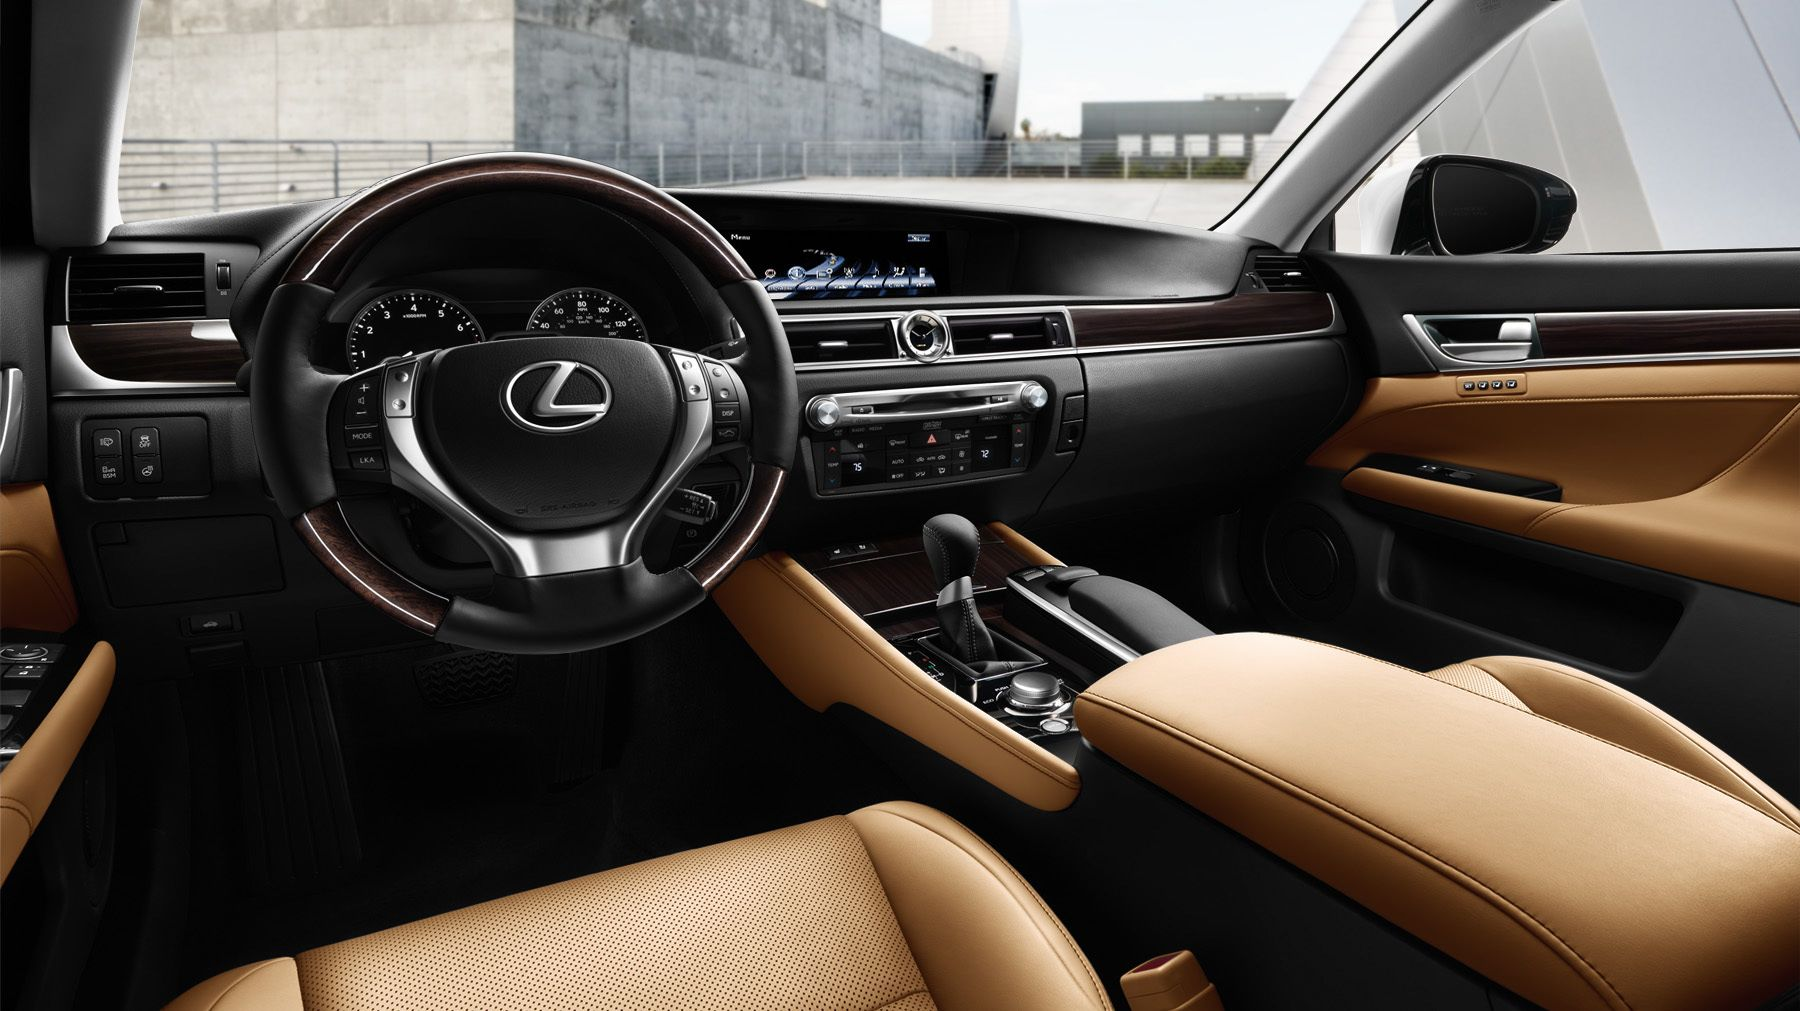 Lexus GS Interior Cockpit